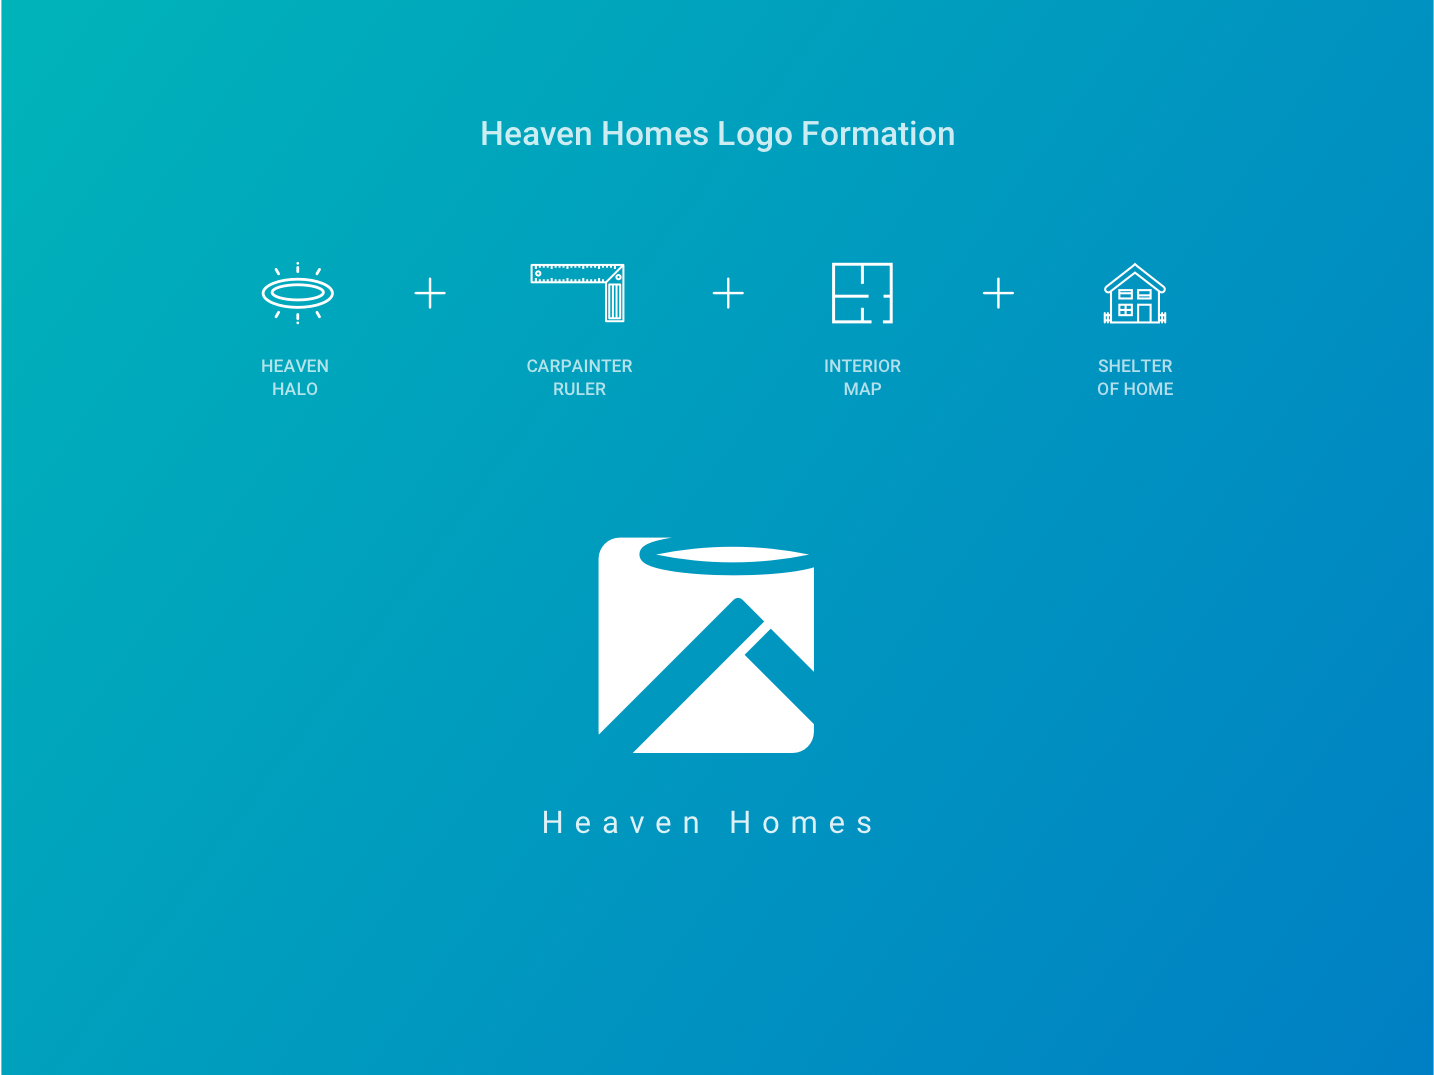 Logo Design : Heaven Homes branding design symbol finder visual design architecture interior design heaven home minimal illustration typography vector logo icon flat design clean branding art